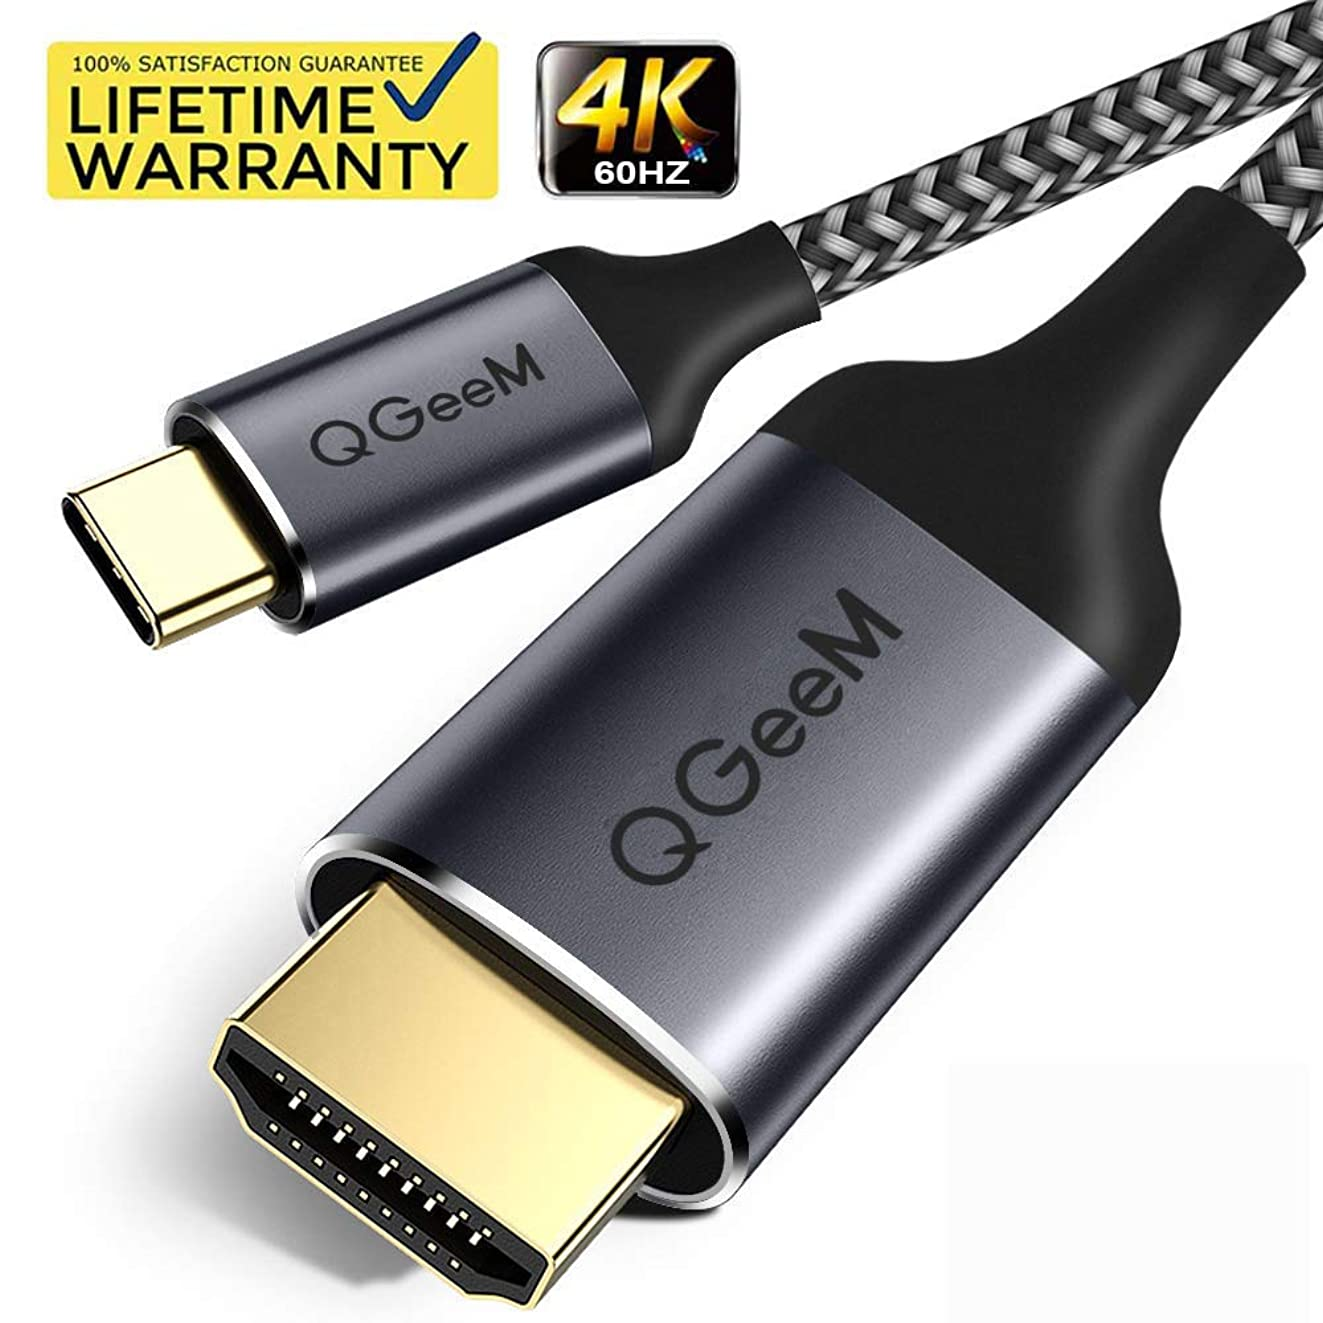 USB C to HDMI Cable Adapter, QGeeM 6ft Braided 4K@60Hz Cable Adapter(Thunderbolt 3 Compatible) for iPad Pro,MacBook Pro 2018 iMac, ChromeBook Pixel, Galaxy S9 Note9 S8 Surface Book hdmi USB-c